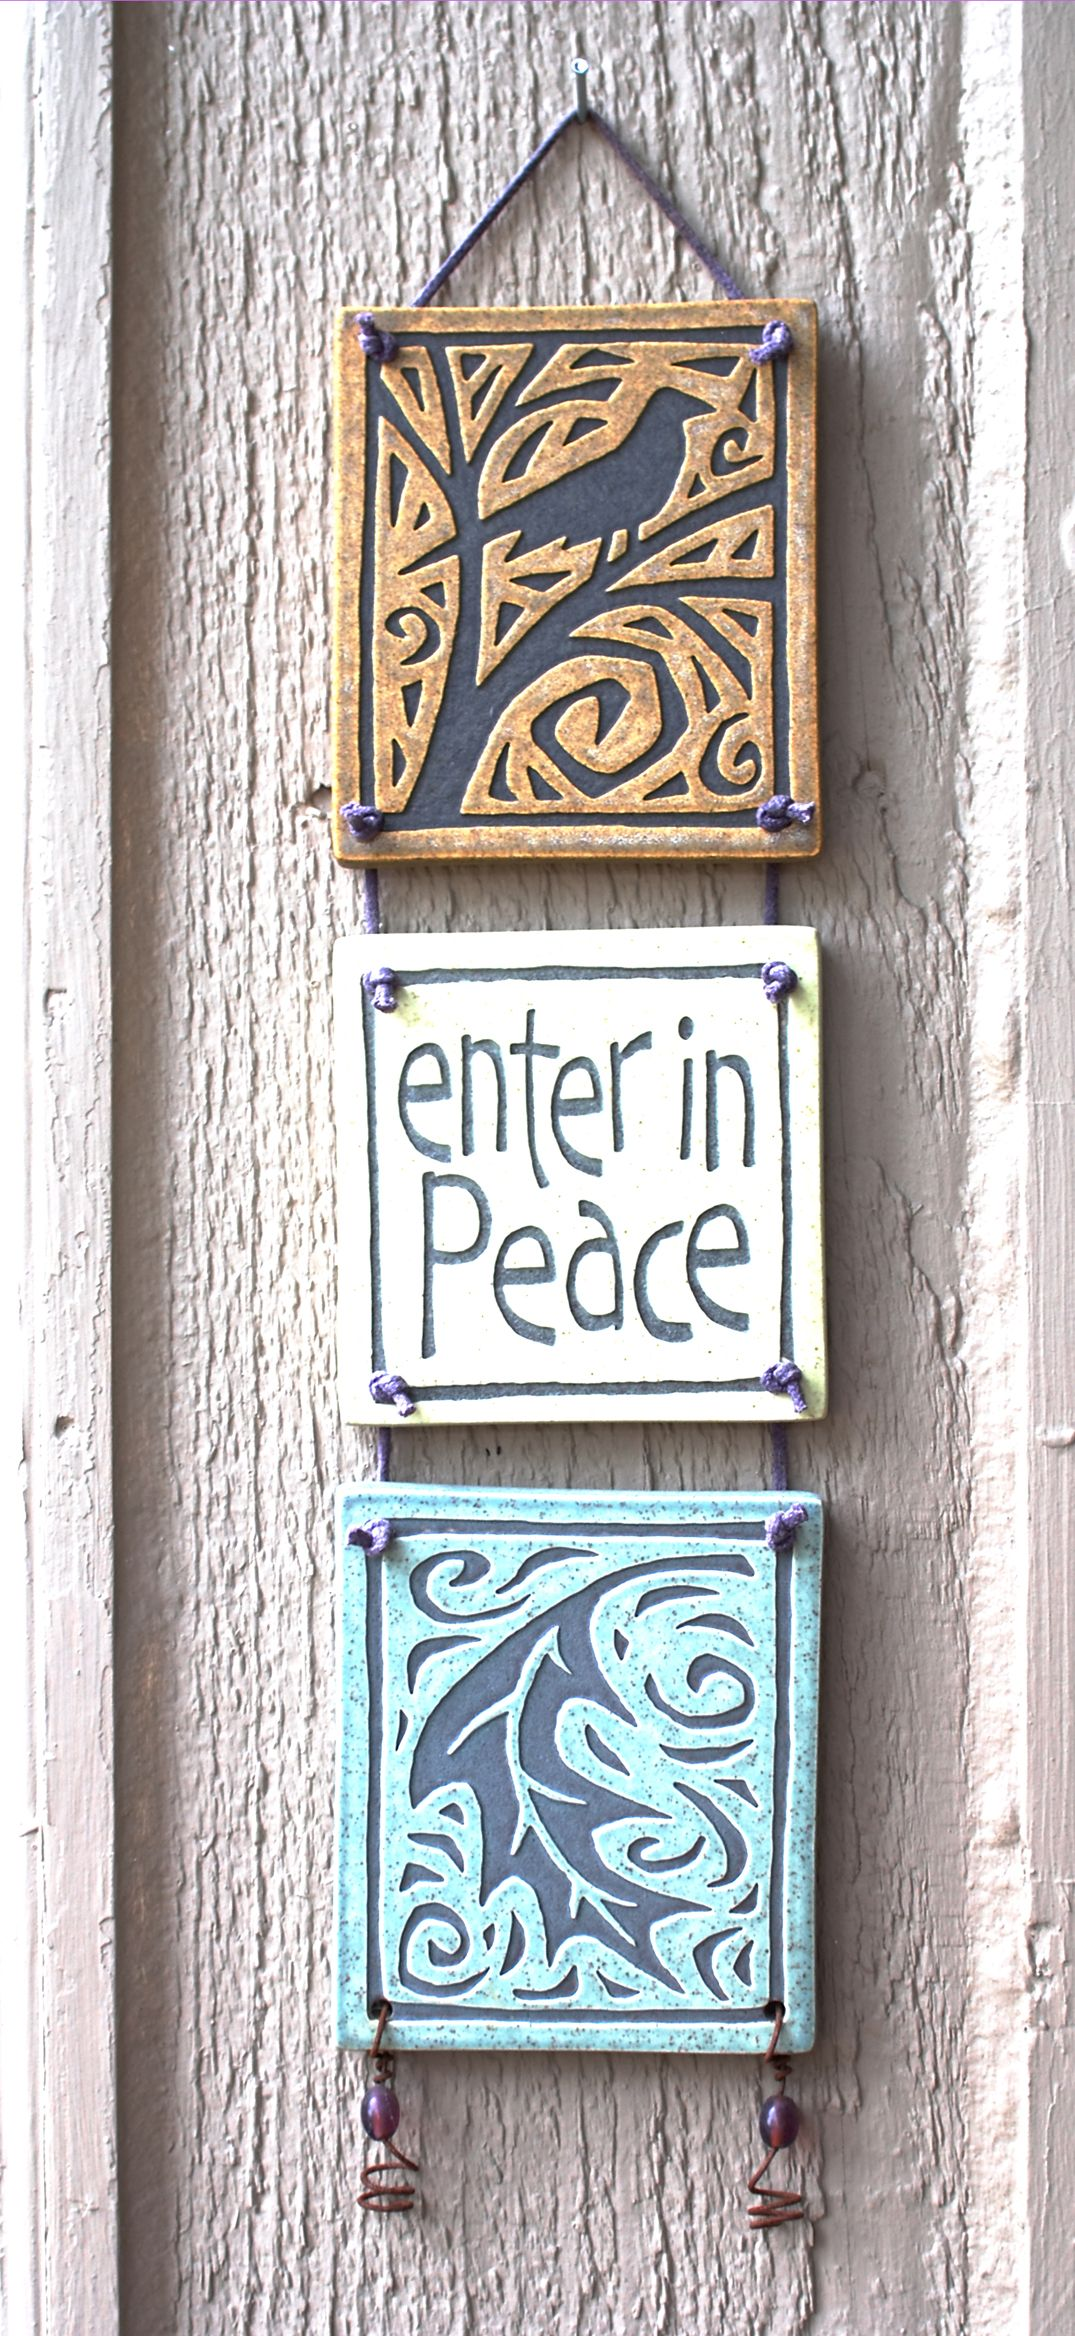 Good idea to hang house numbers too diy garden pinterest ceramic hanging with 3 tiles nice for house numbers dailygadgetfo Gallery